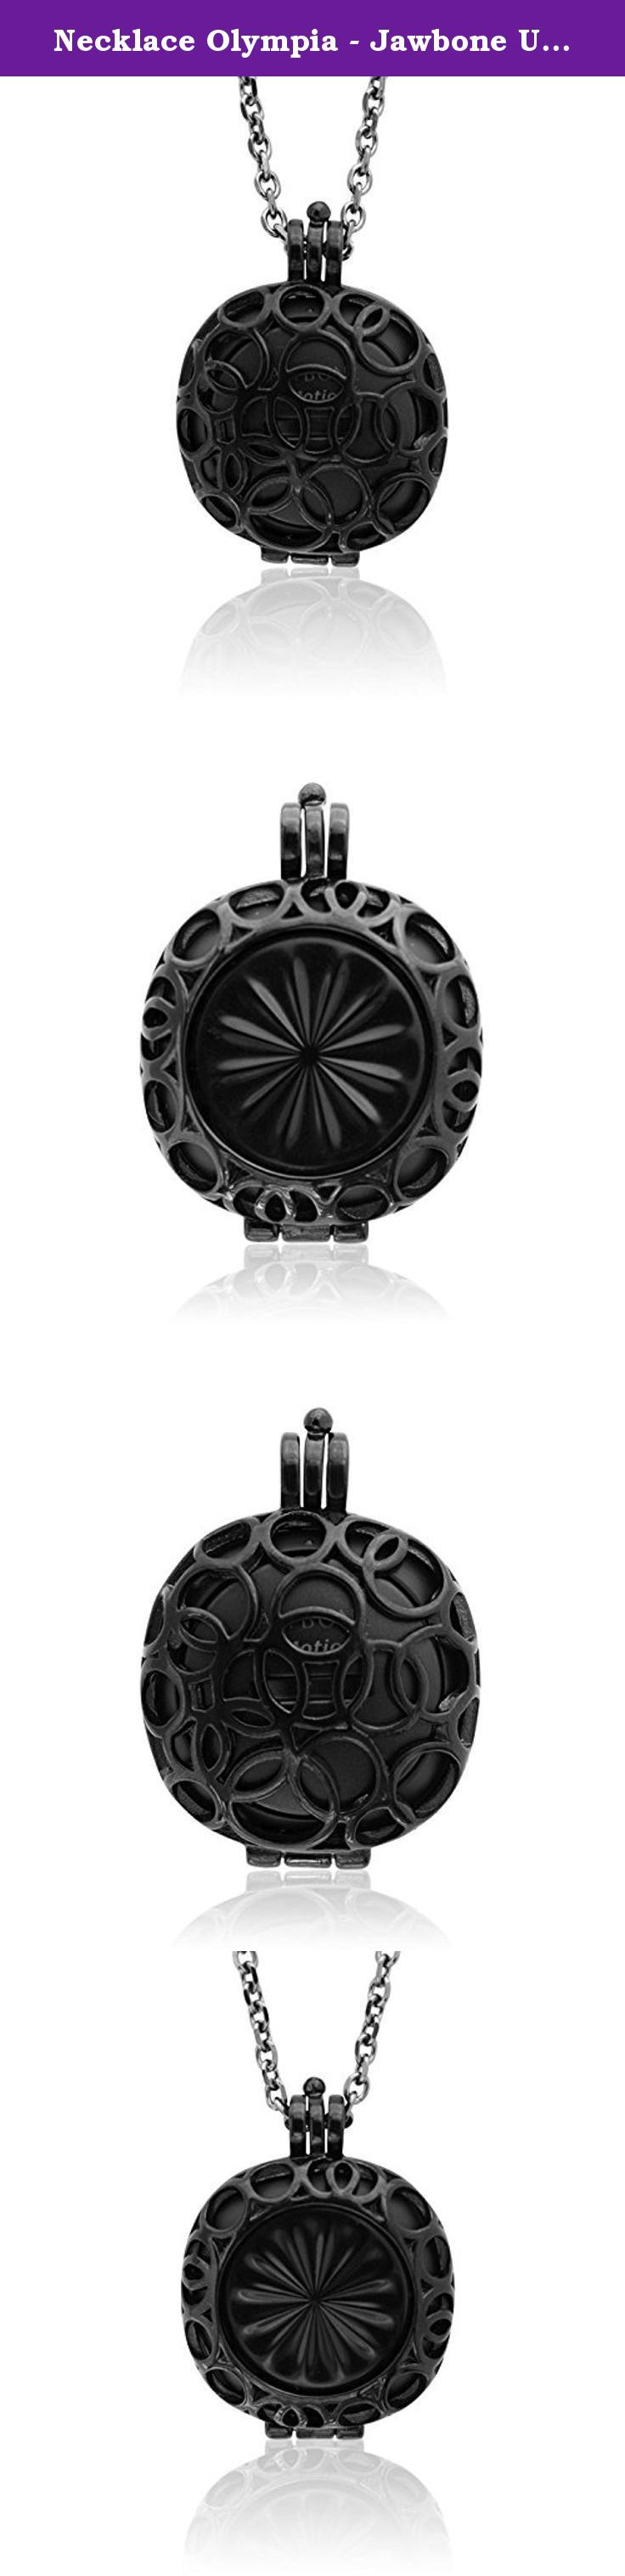 Necklace Olympia - Jawbone Up Move Jewelry - Black. Transform your fitness tracker into a stylish accessory! No worries, the BLACK rhodium plating will last. Here's the best: The design of the pendant allows you to see the tracker's mode indicator lights! No need to remove it to check on your progress. Highlights: - Handmade item from stainless steel - Plated in Black rhodium - The pendant holds the Jawbone UP MOVETM perfectly - No rubber wristband, so your outfit will not be ruined! - No...